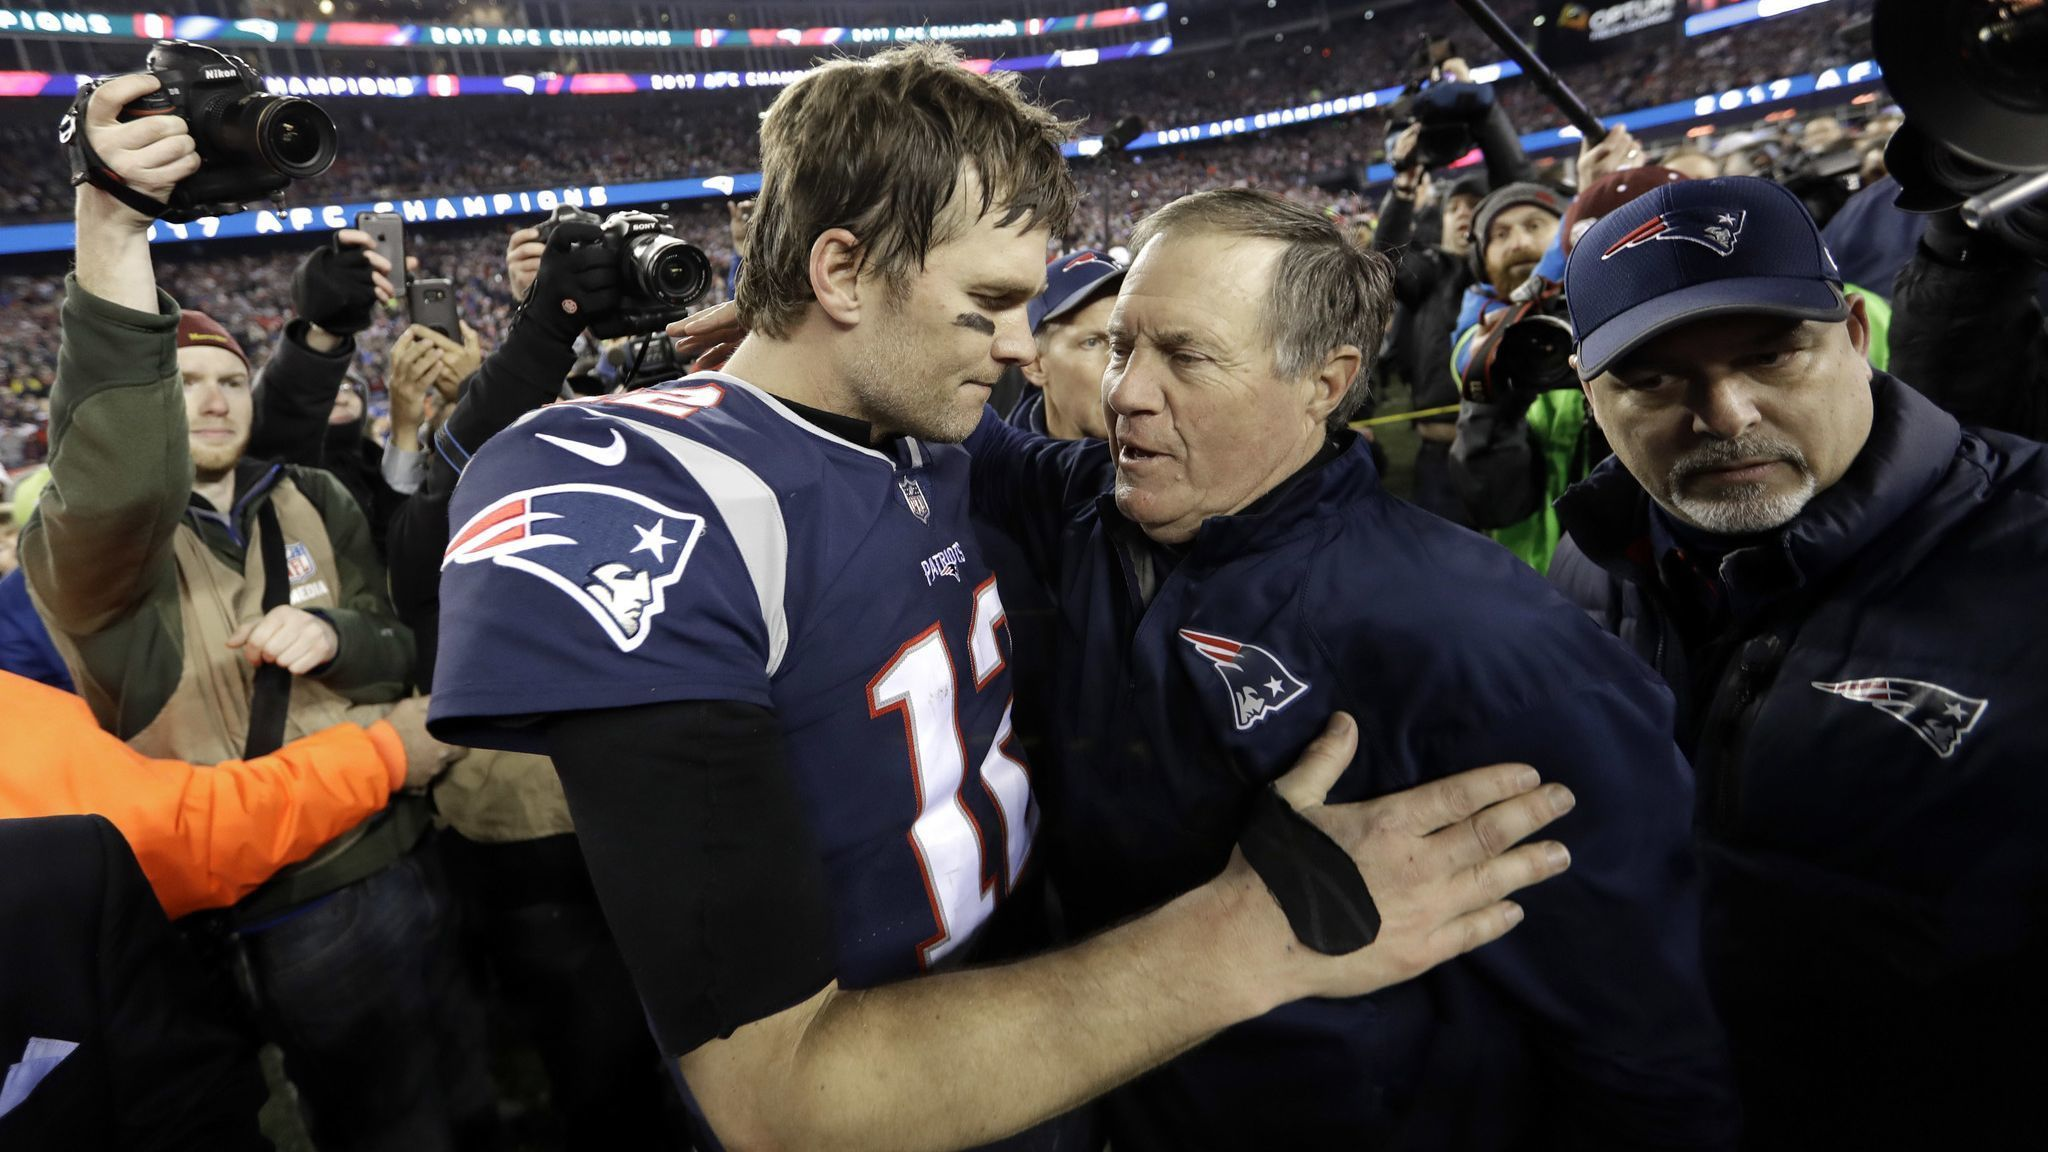 Patriots are football's perfect villain — cheating, haughty, hated